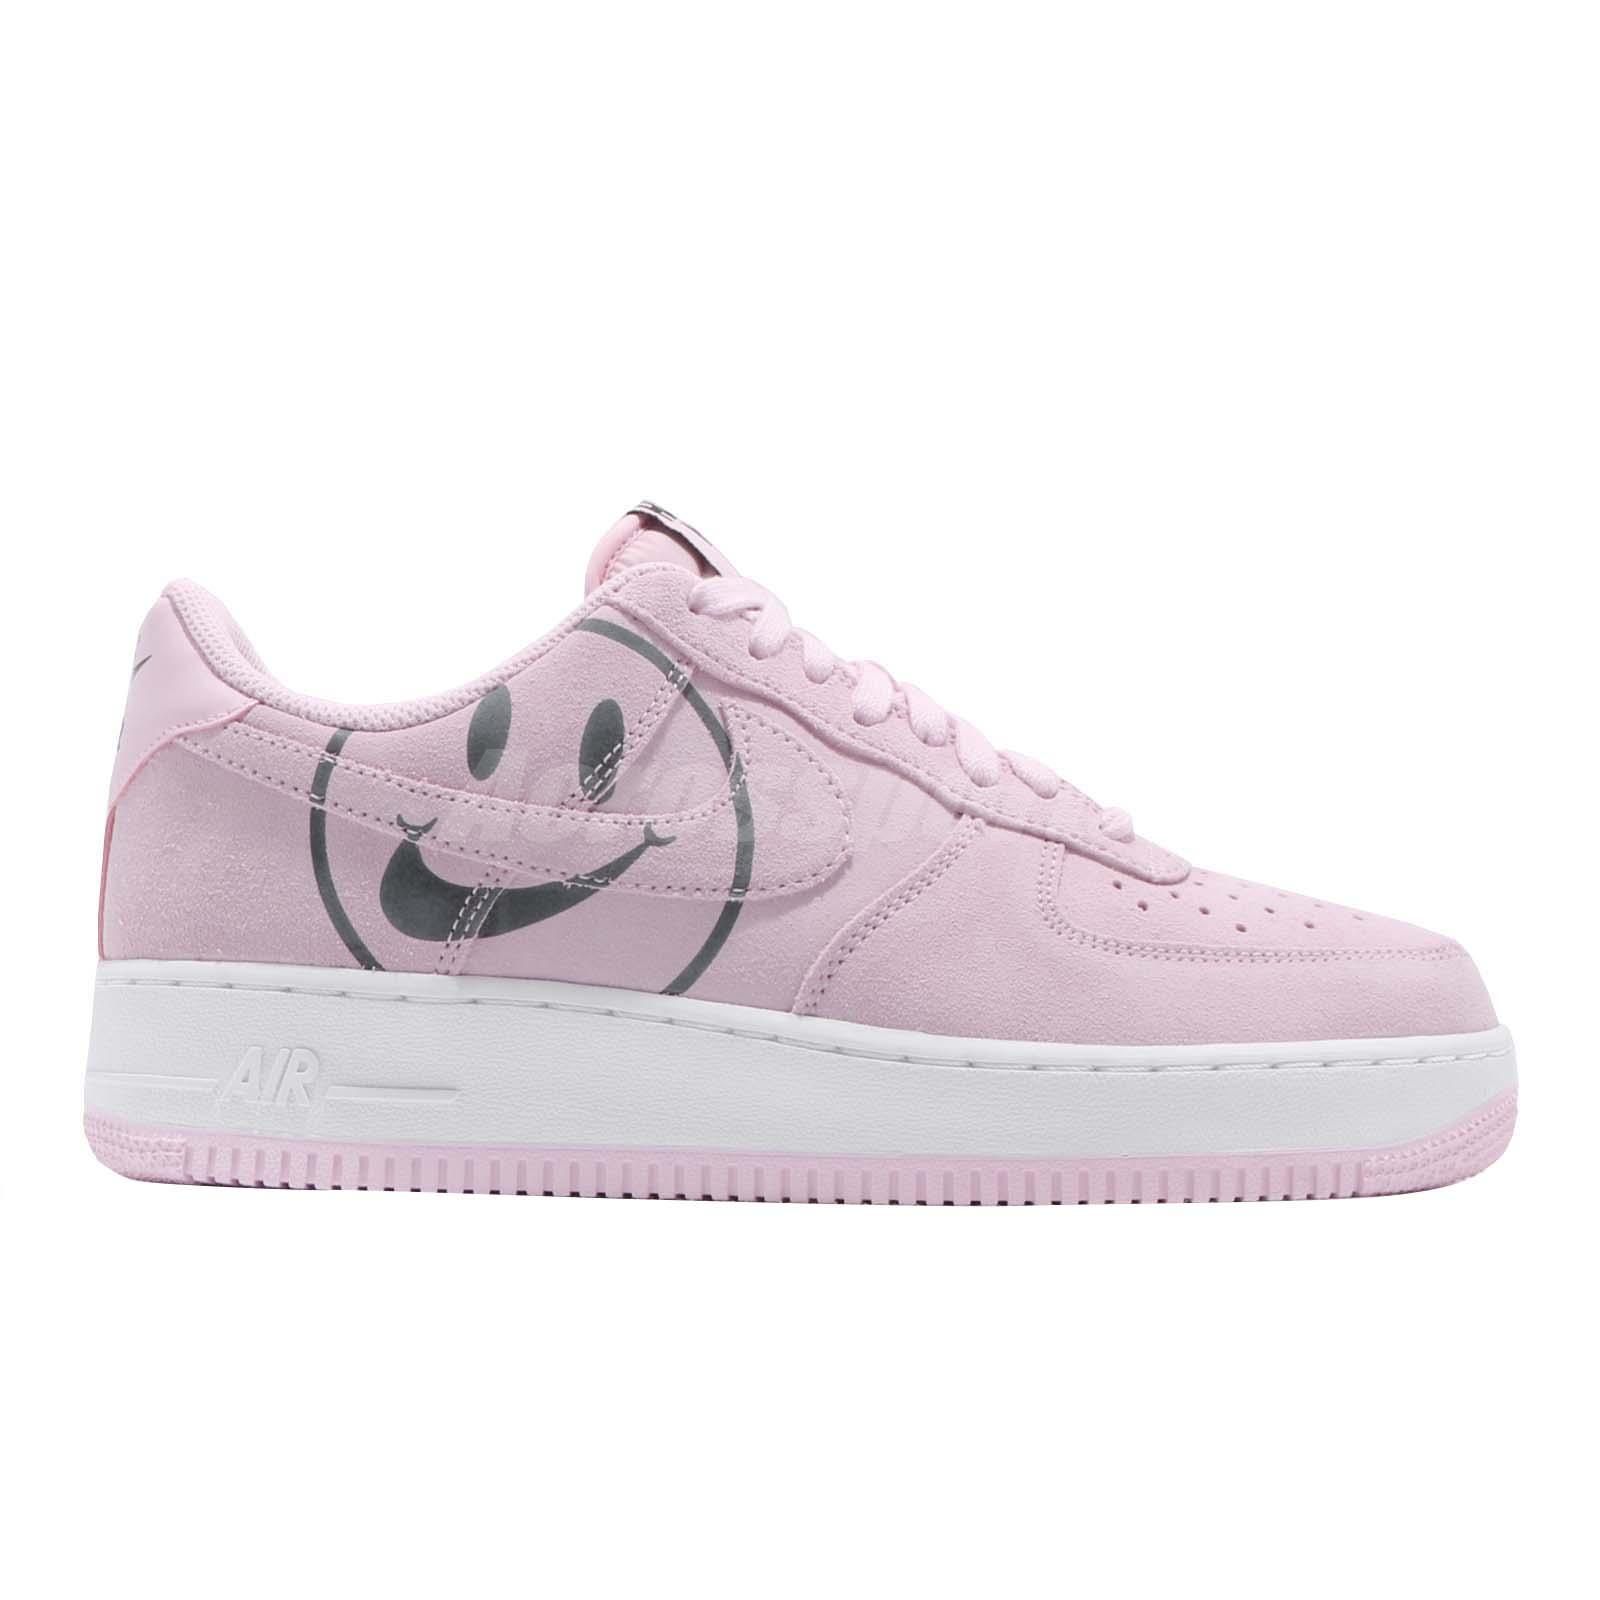 san francisco 5e5c8 0b0f1 Nike Air Force 1 07 LV8 ND AF1 Have A Nike Day Pink White Men Shoes ...